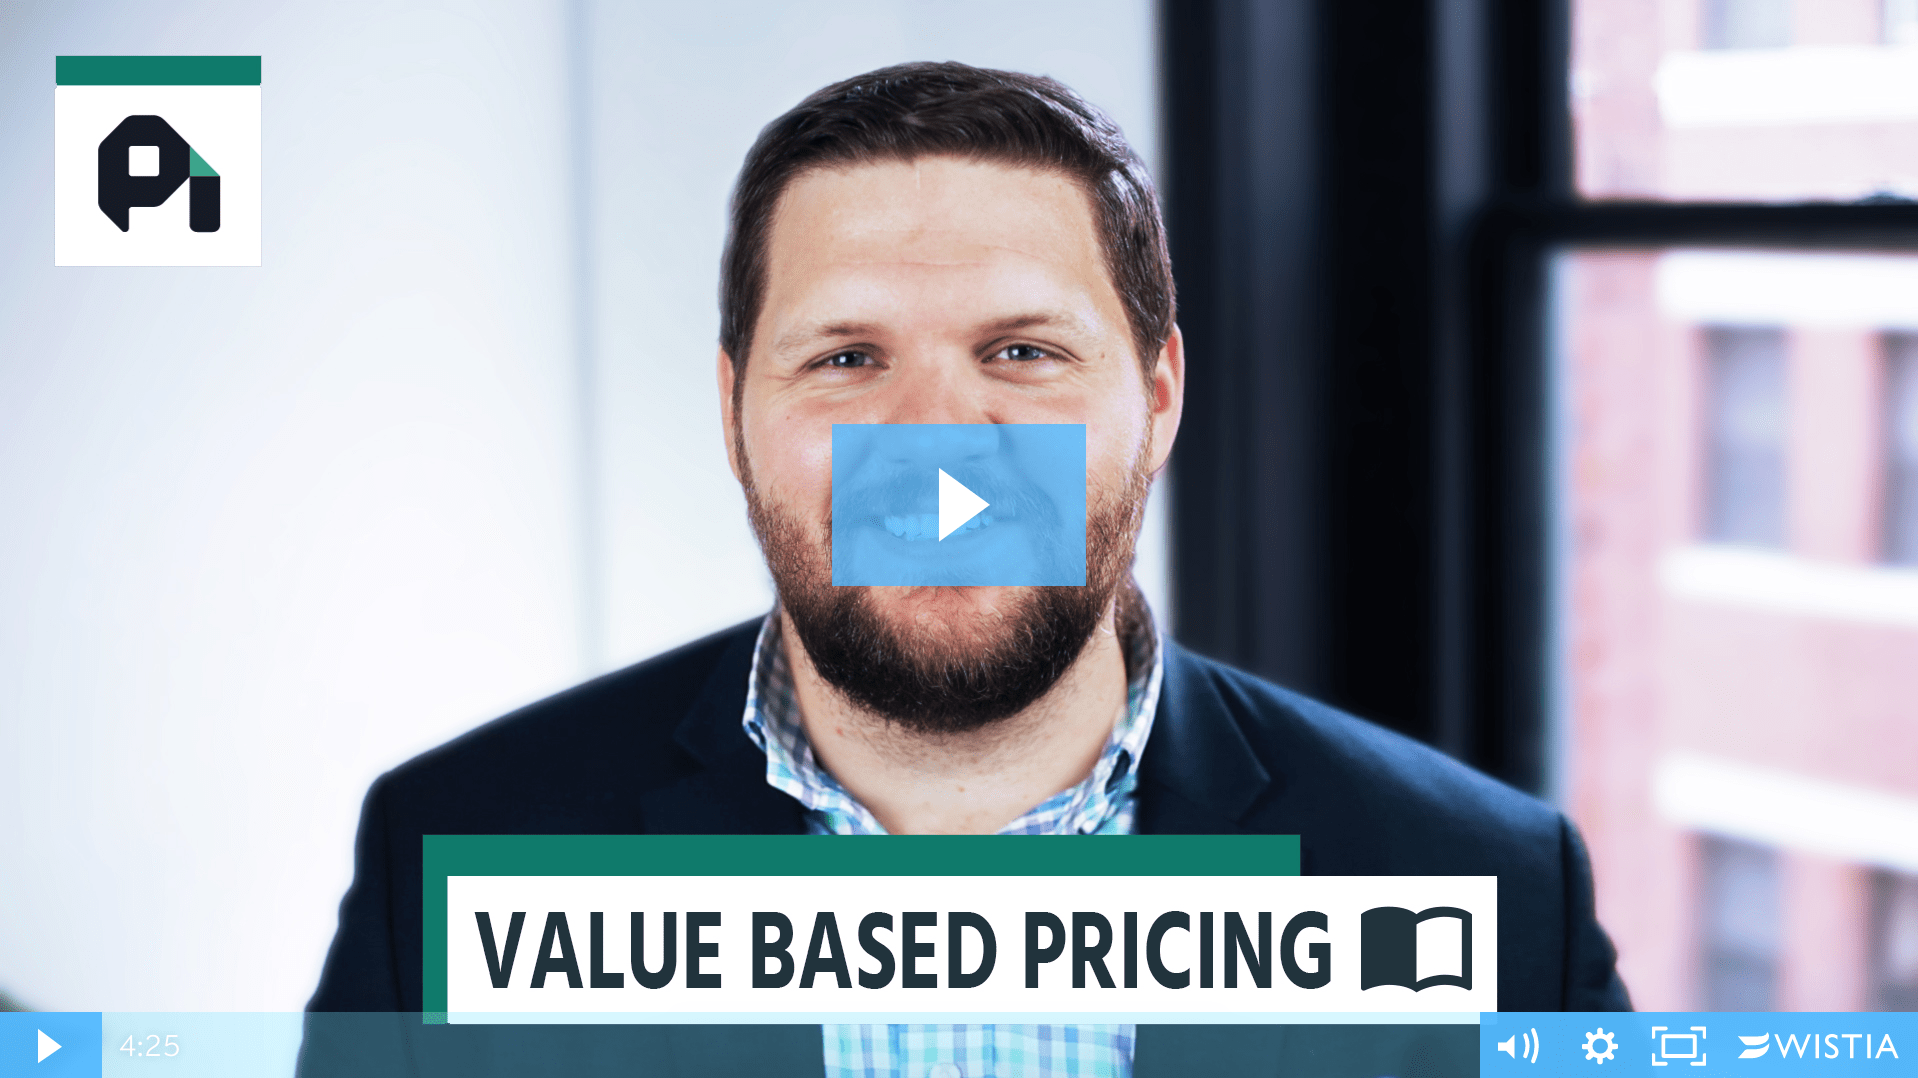 3 types of pricing strategy (and why you need value based pricing)